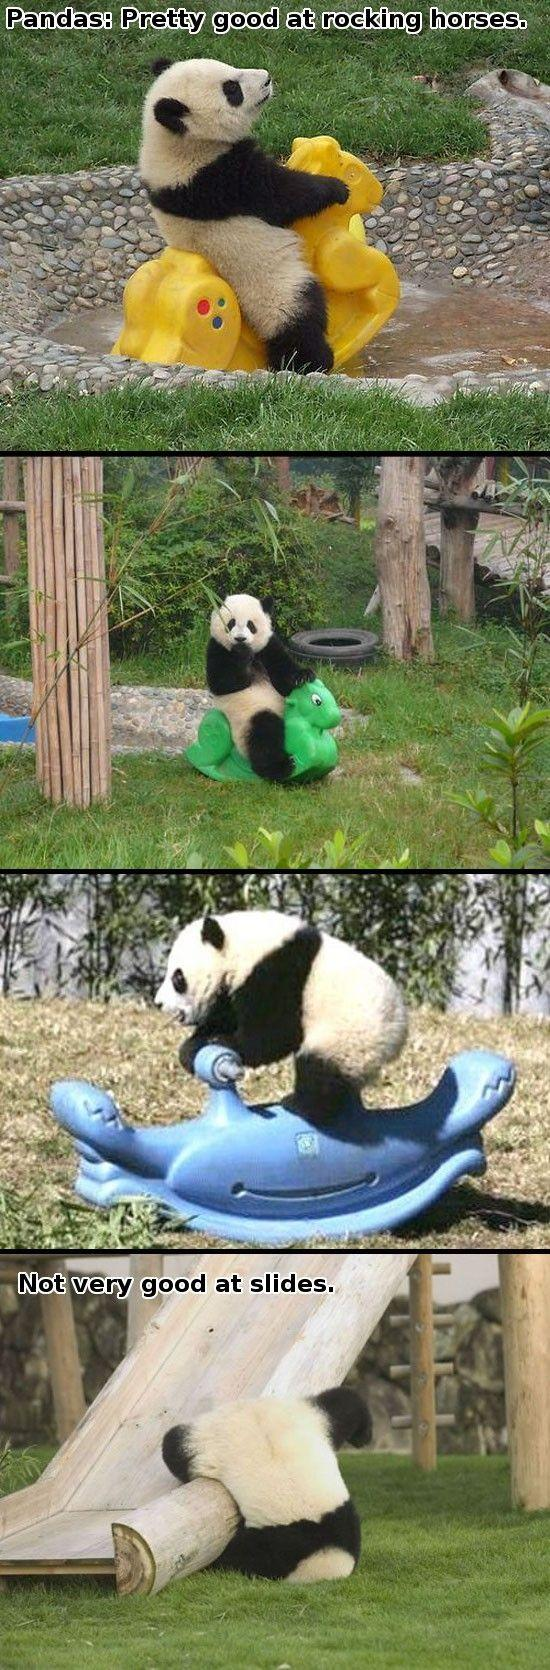 Panda bear funny - photo#28